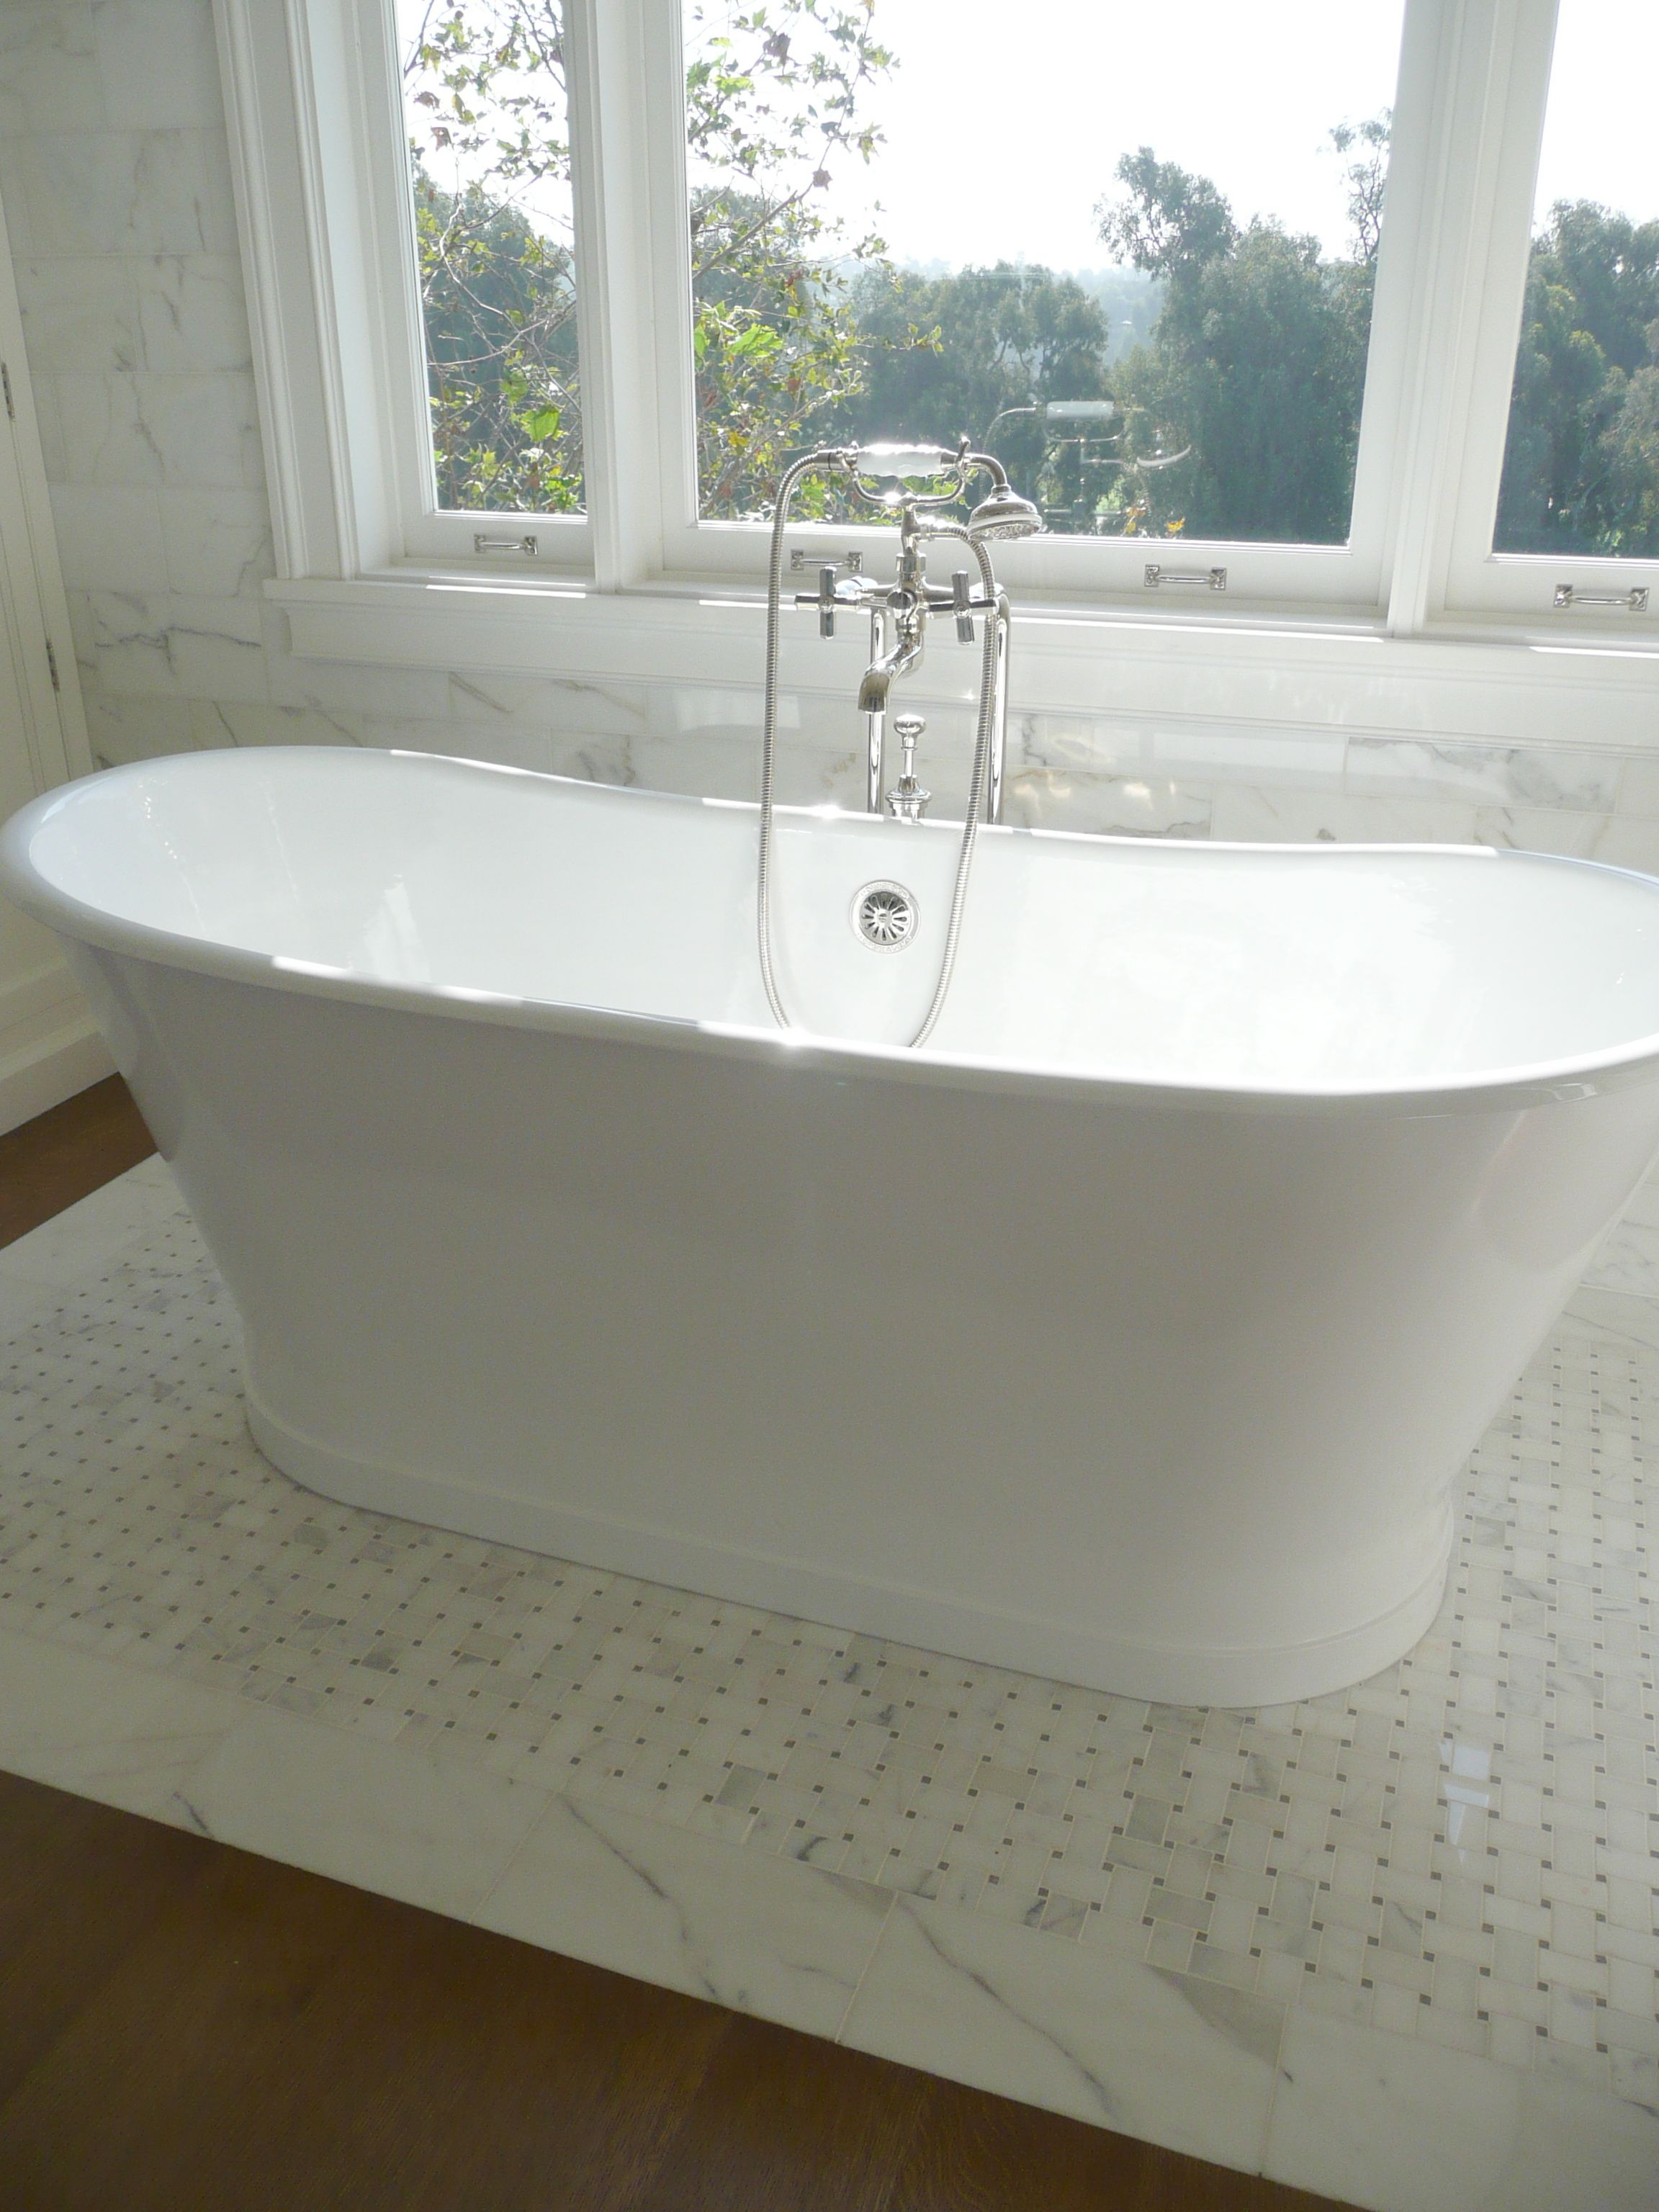 Freestanding Tub In Front Of Window Master Bathroom в